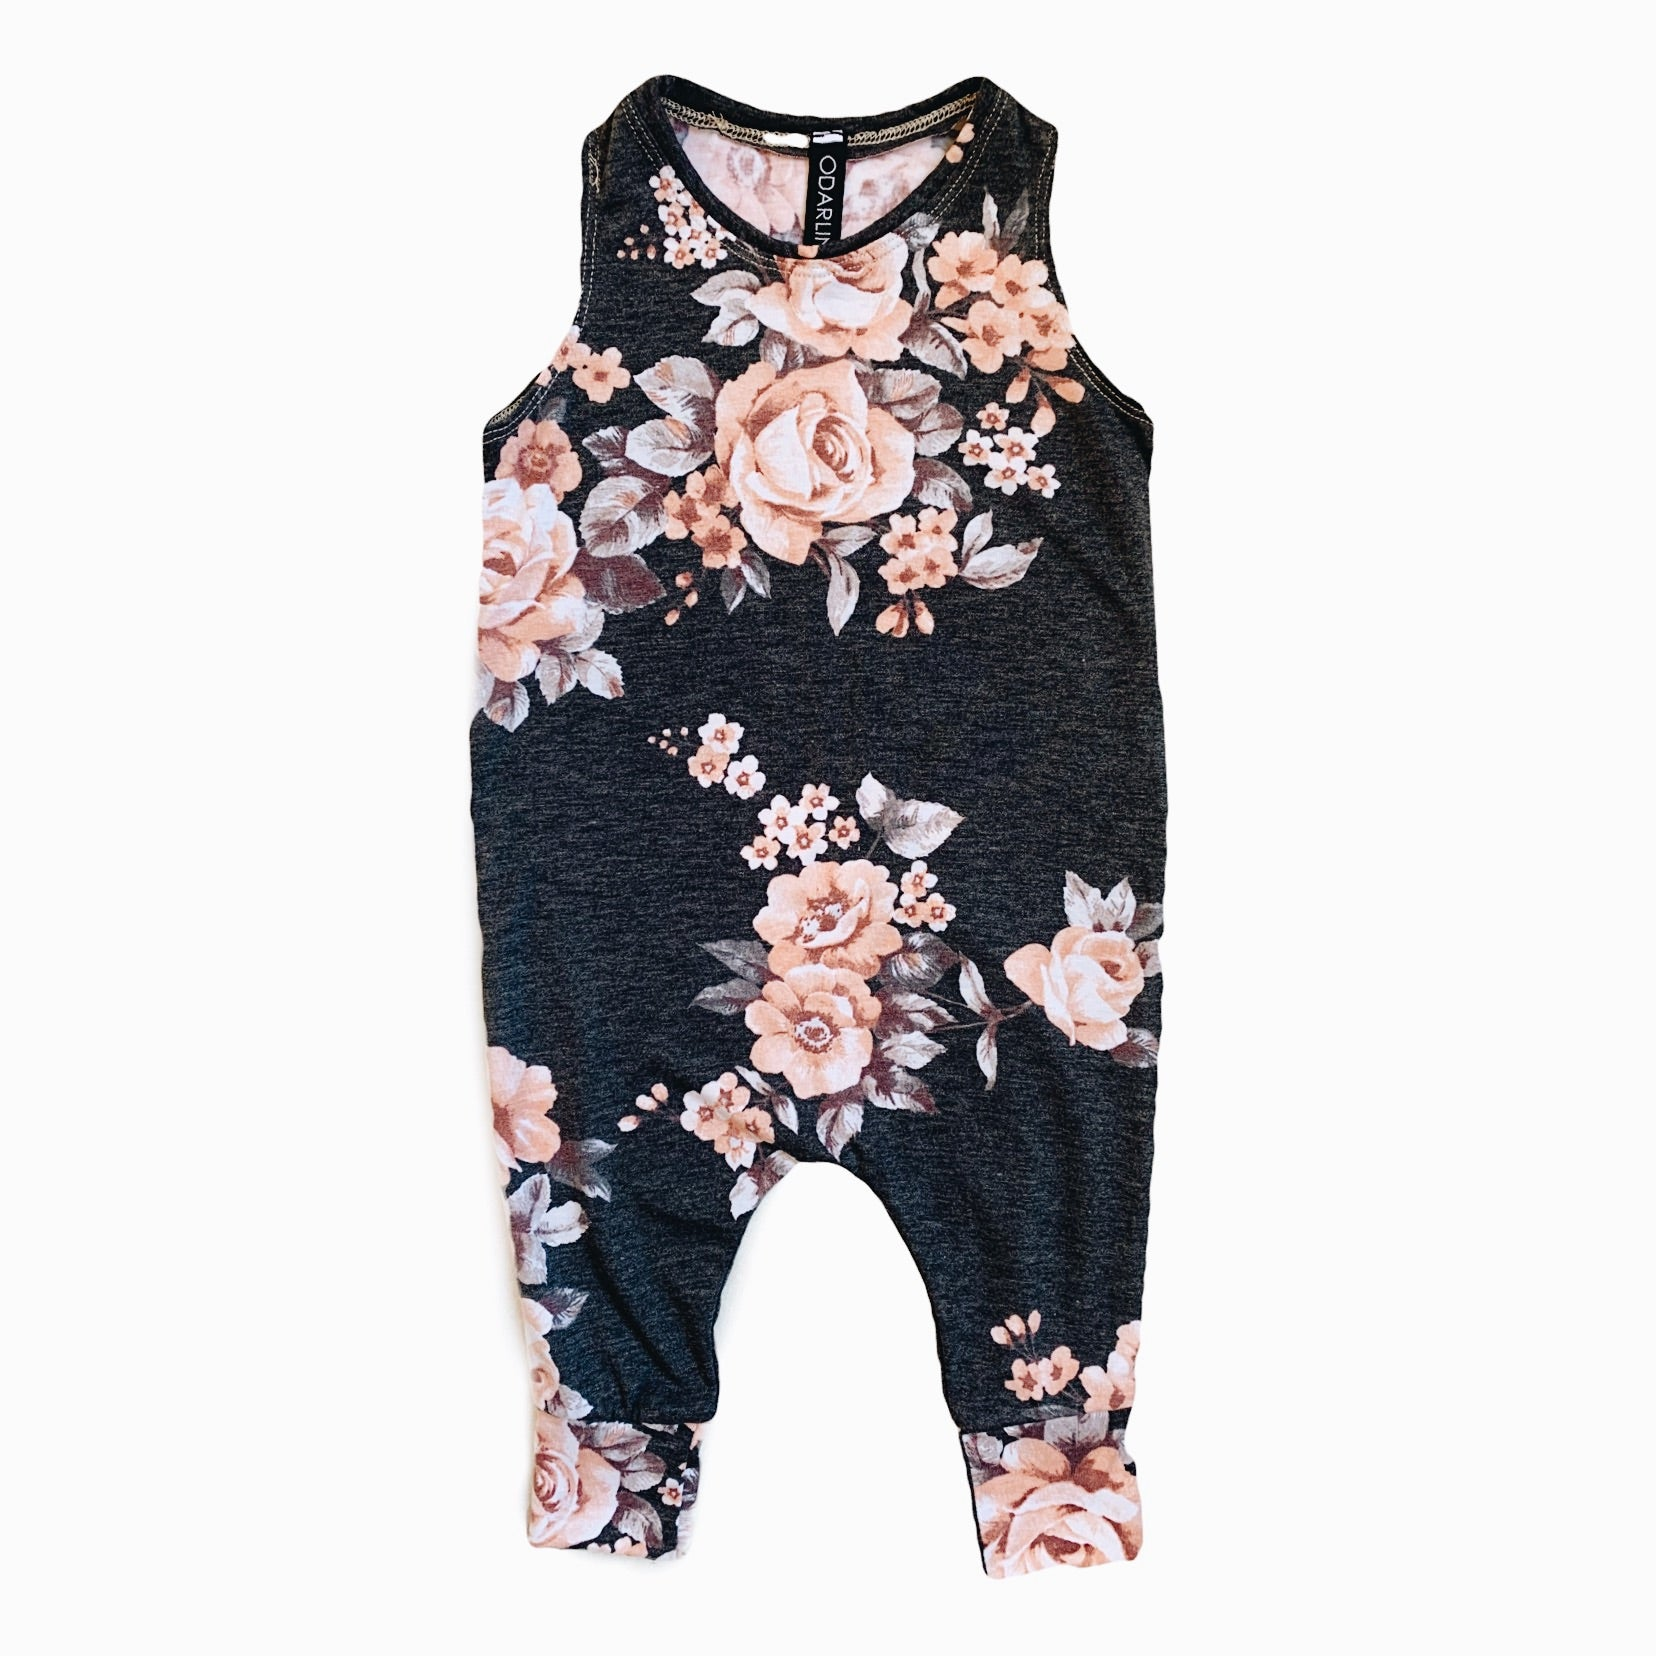 playsuit in charcoal floral